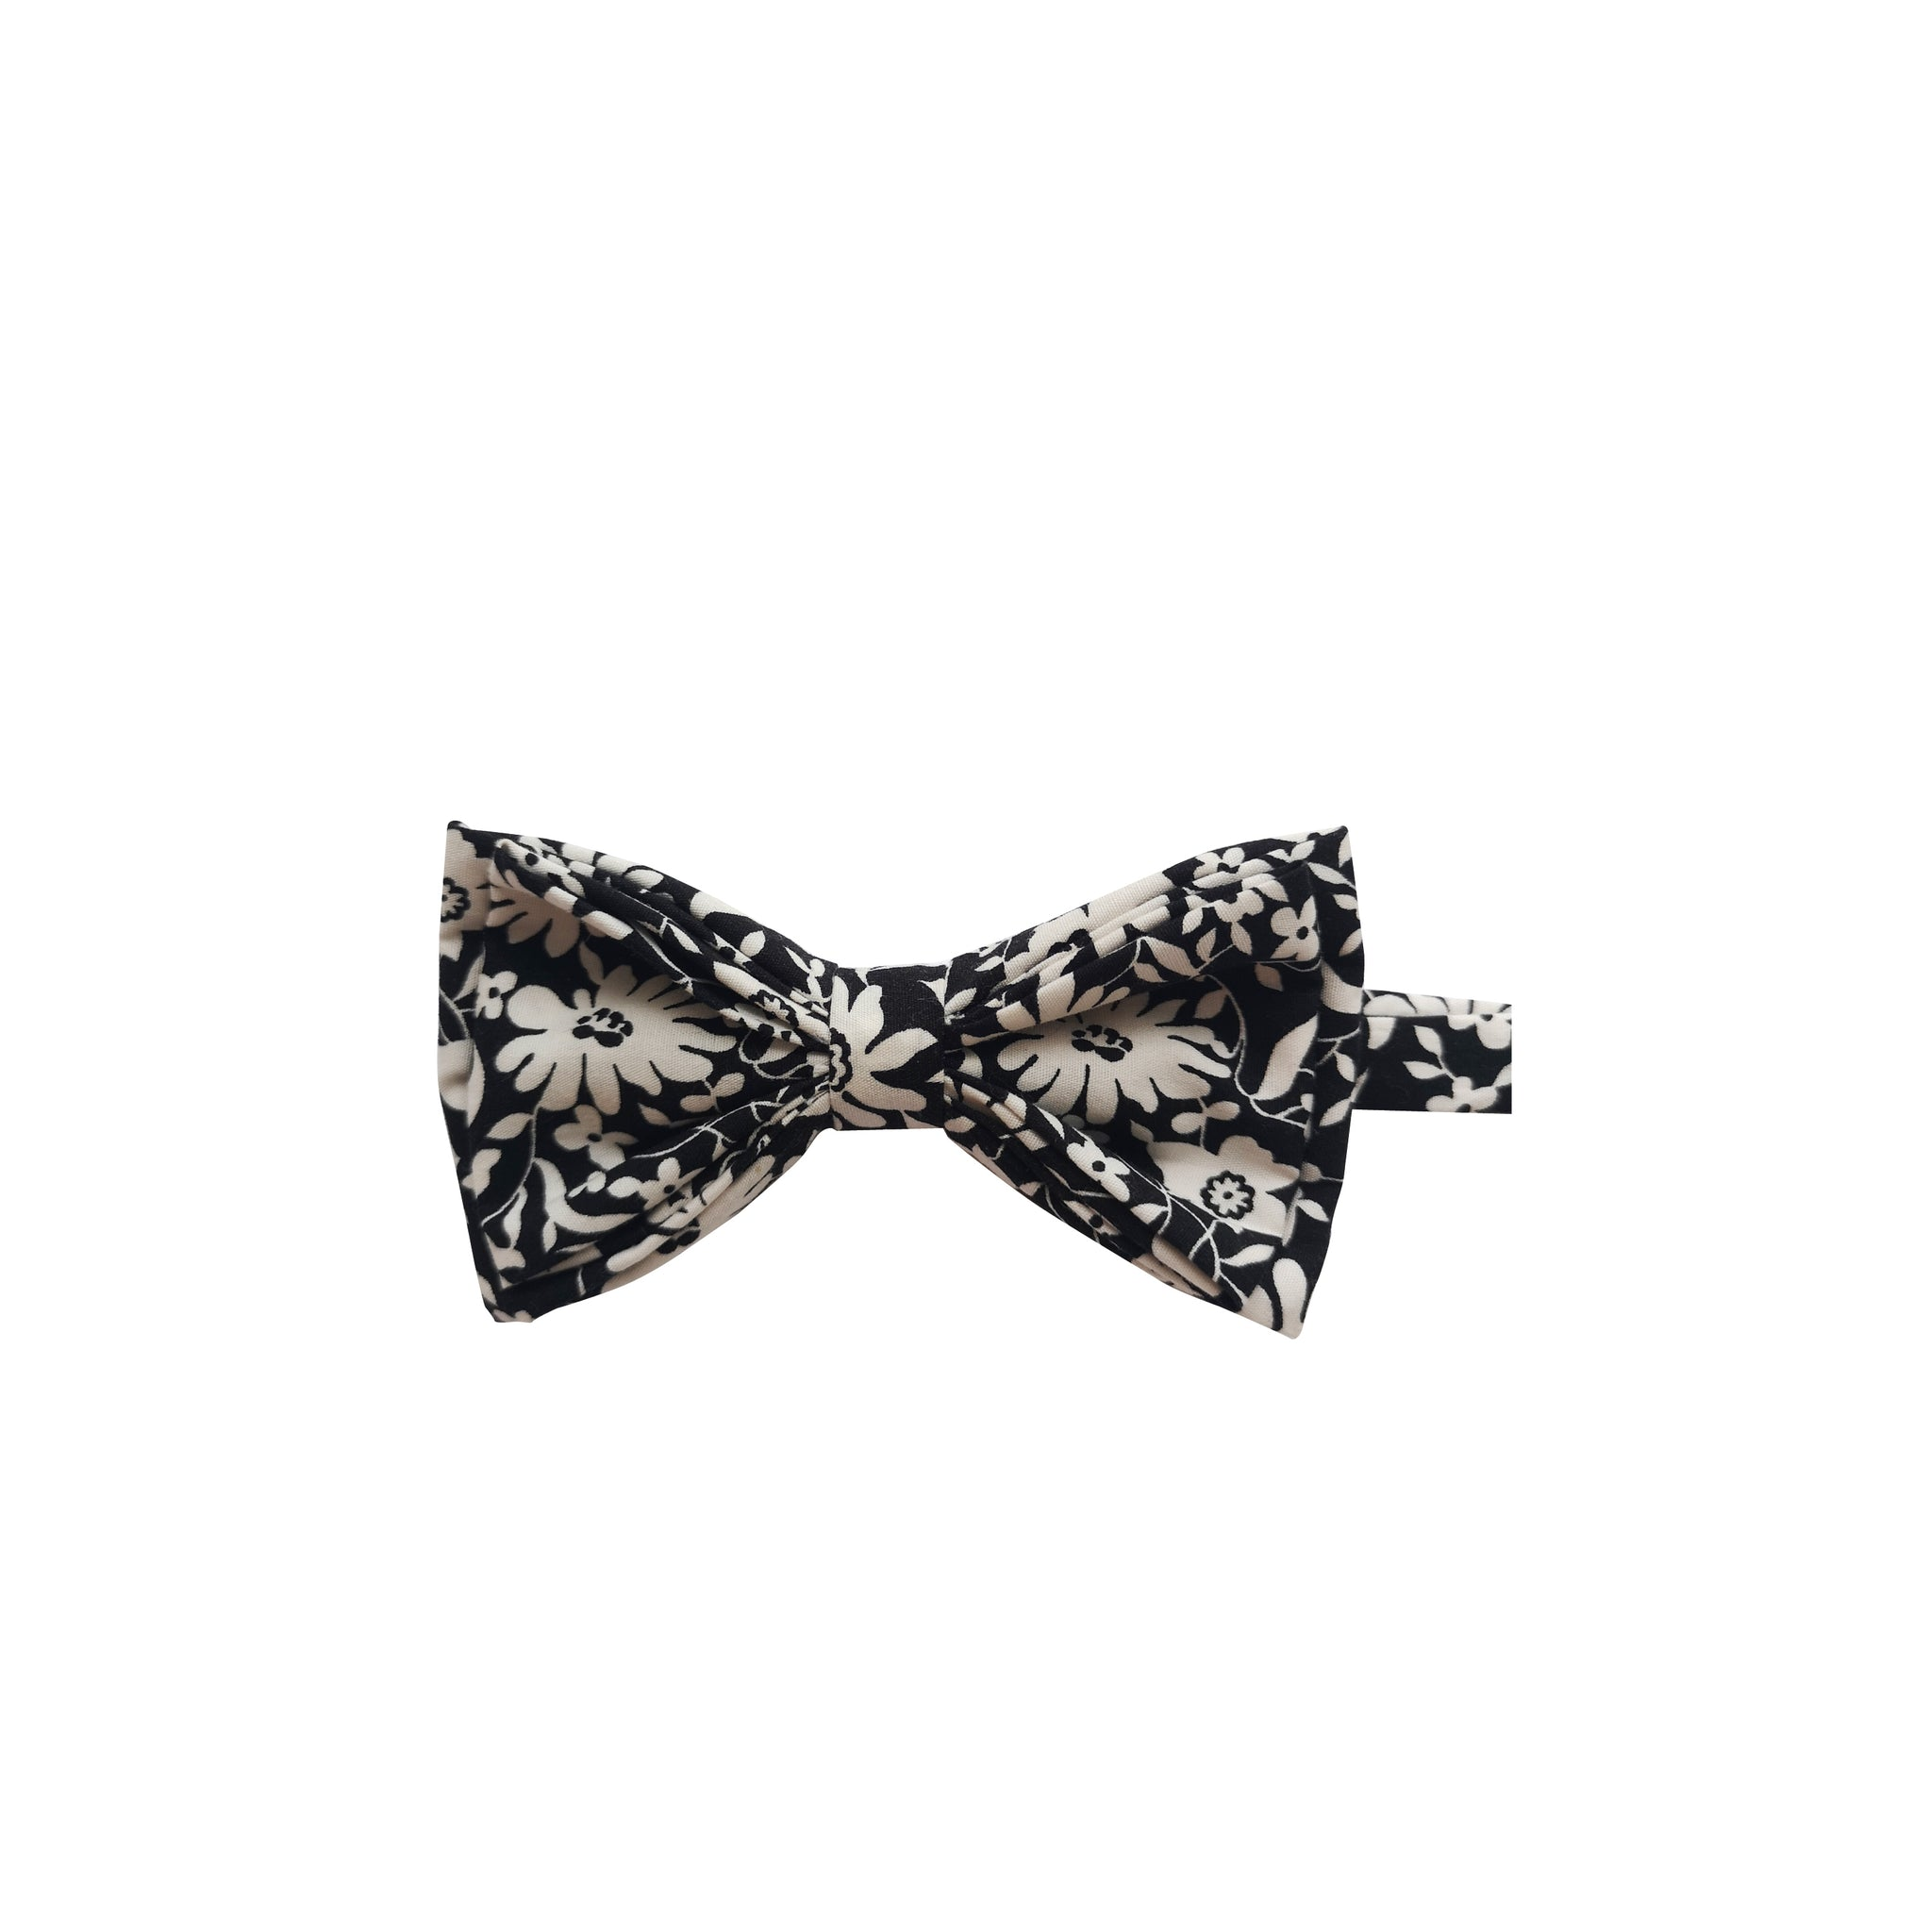 THE ARLEY BOWTIE